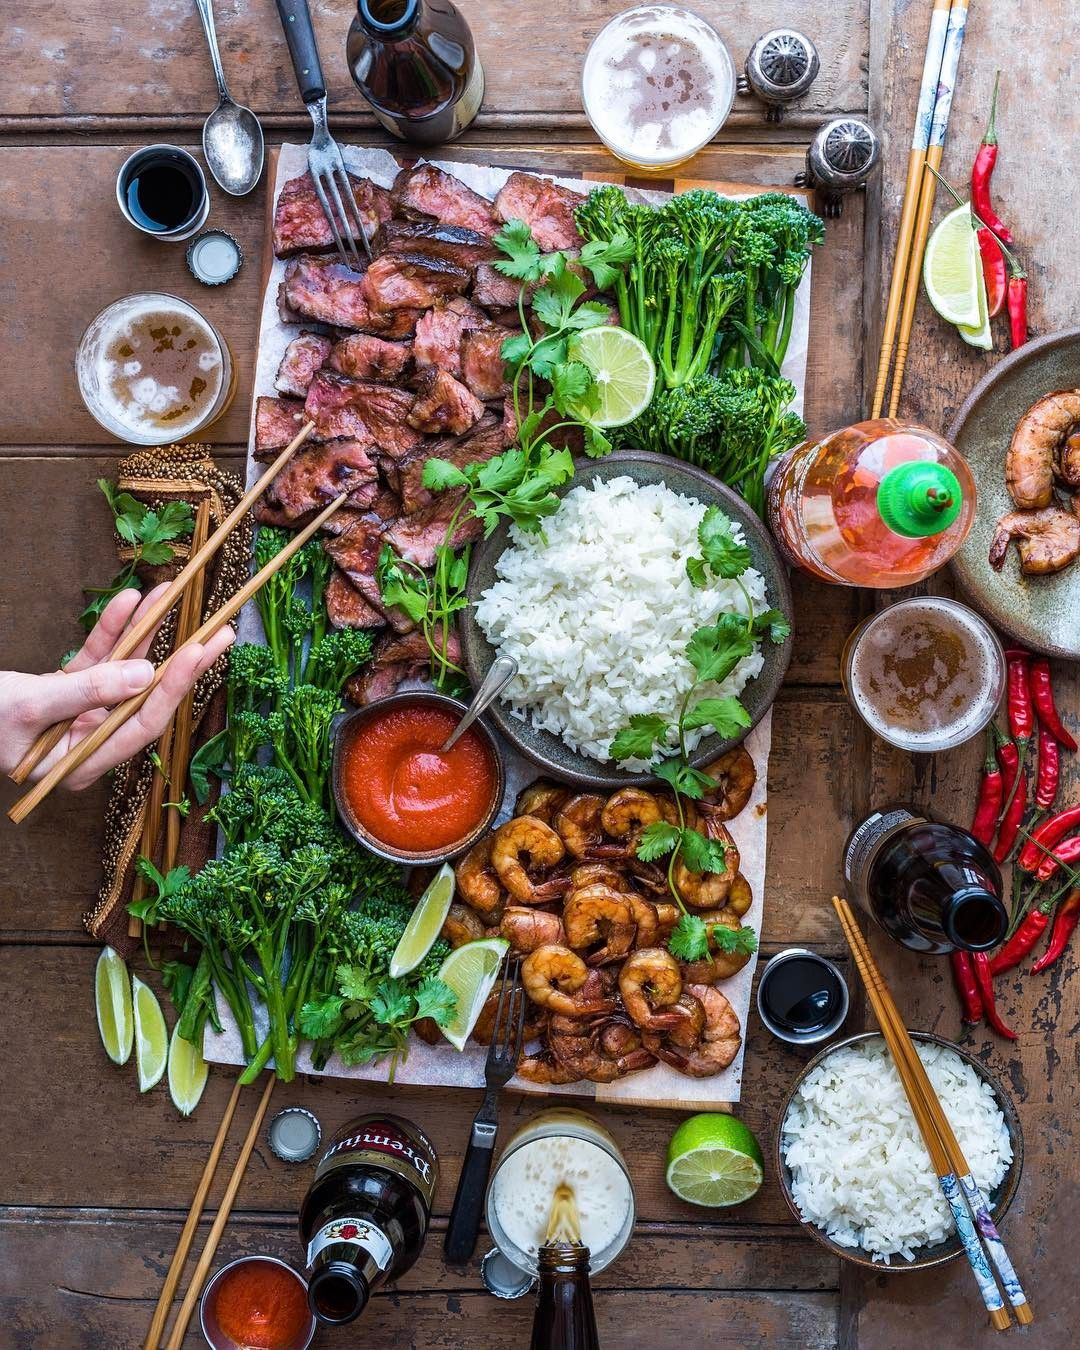 Summer Vibes Are Back In The Maritimes Rocking Gochujang Maple Surf Turf This Eve With The Crew Cooking From My Ne Food Presentation Food Platters Recipes